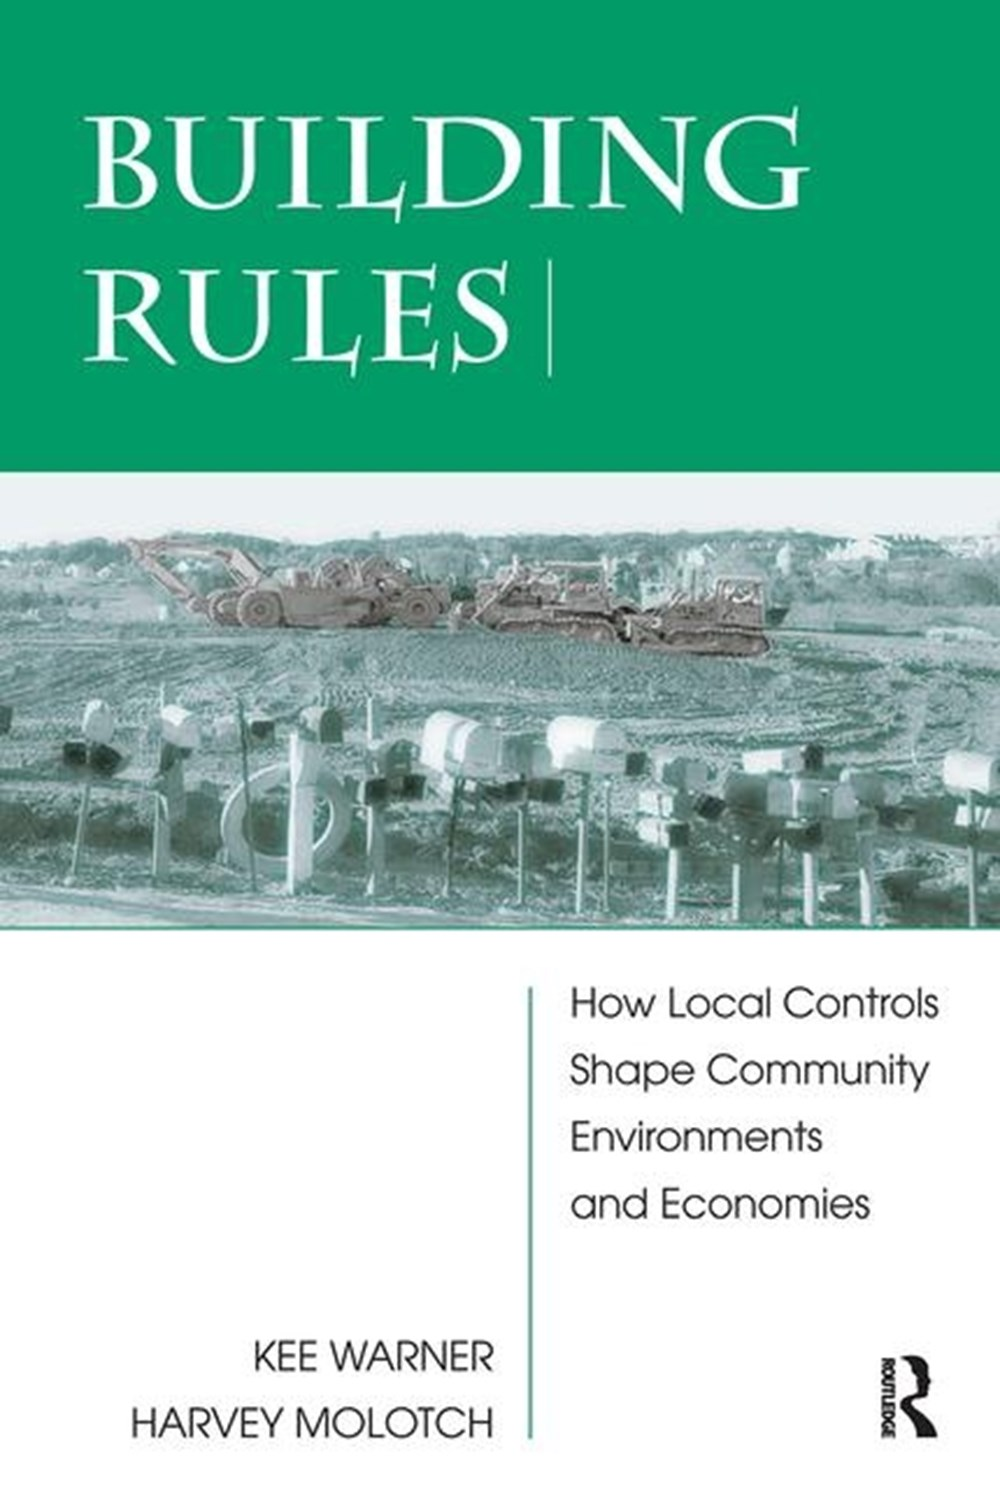 Building Rules How Local Controls Shape Community Environments and Economies